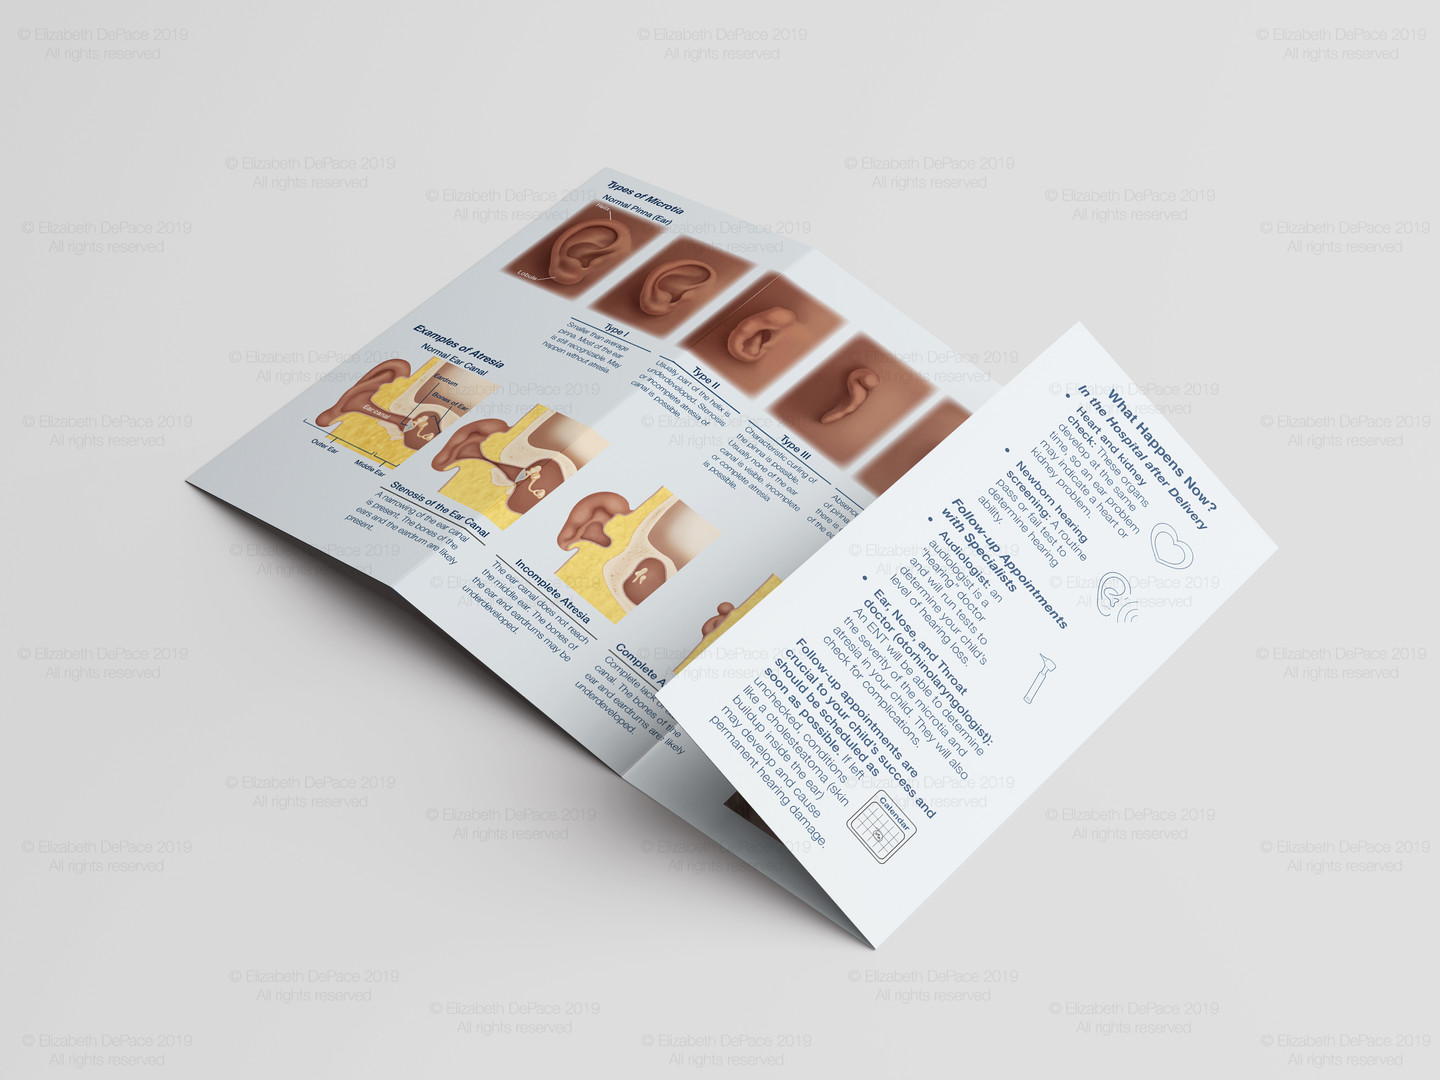 Microtia and Atresia Brochure Mockup